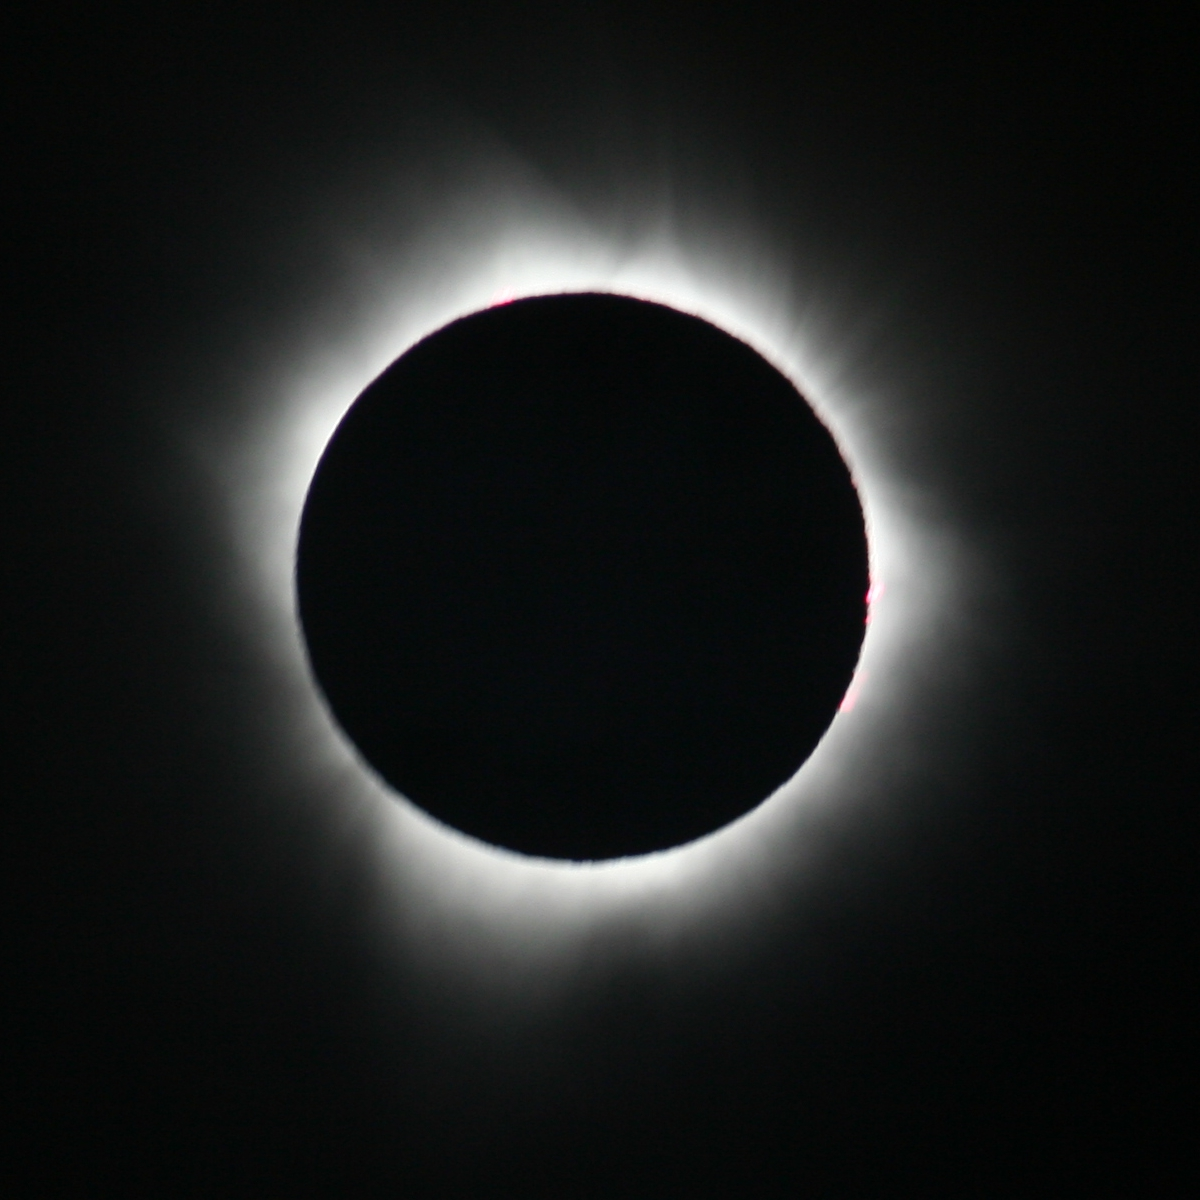 solar eclipse of july 11 2010 wikipedia. Black Bedroom Furniture Sets. Home Design Ideas